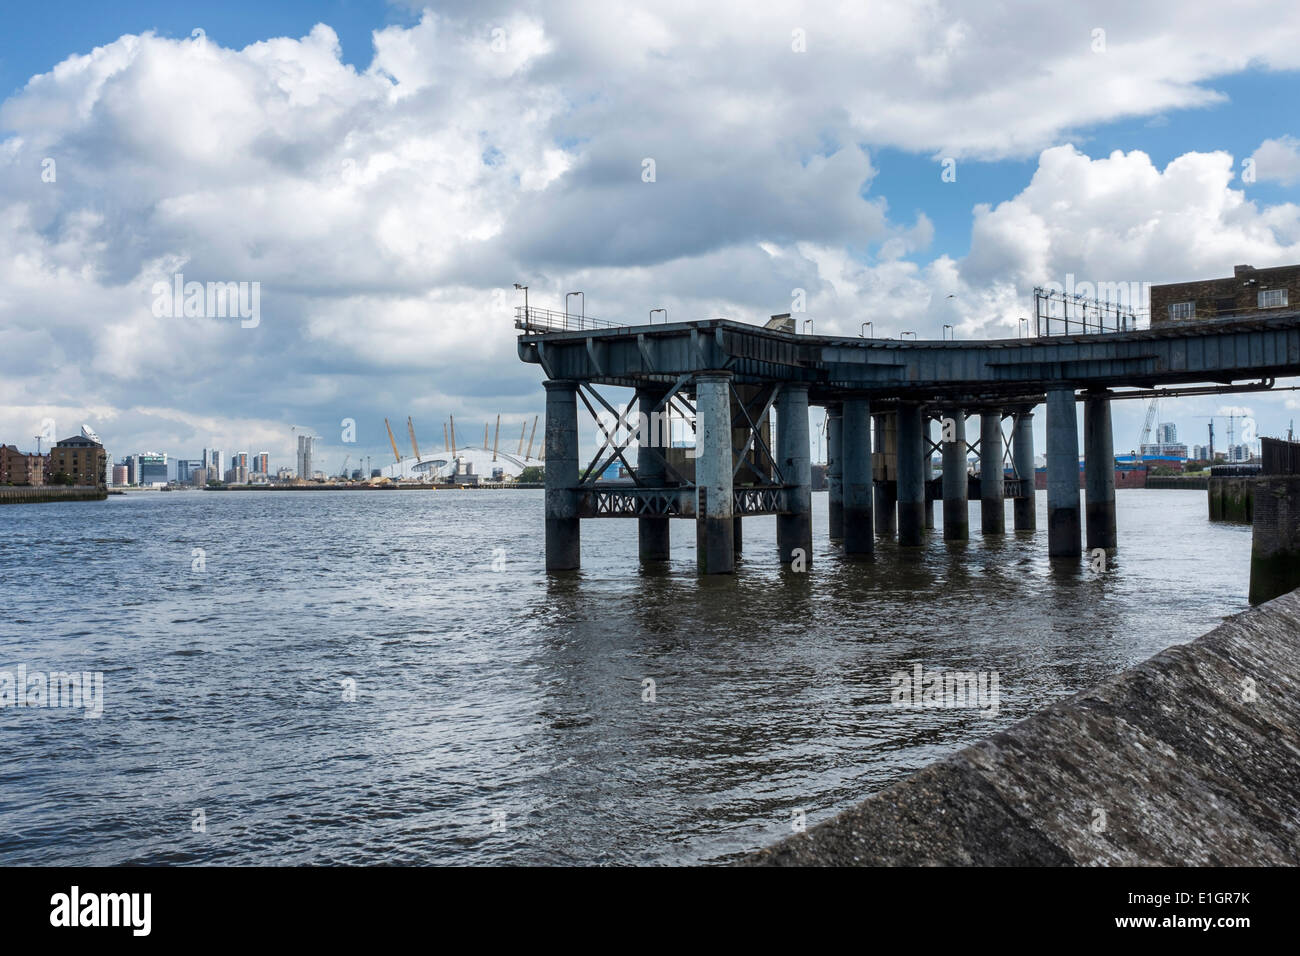 Greenwich Power Station Coal Jetty stands on 16 Doric-style cast iron columns in the Thames river, London, UK - Stock Image